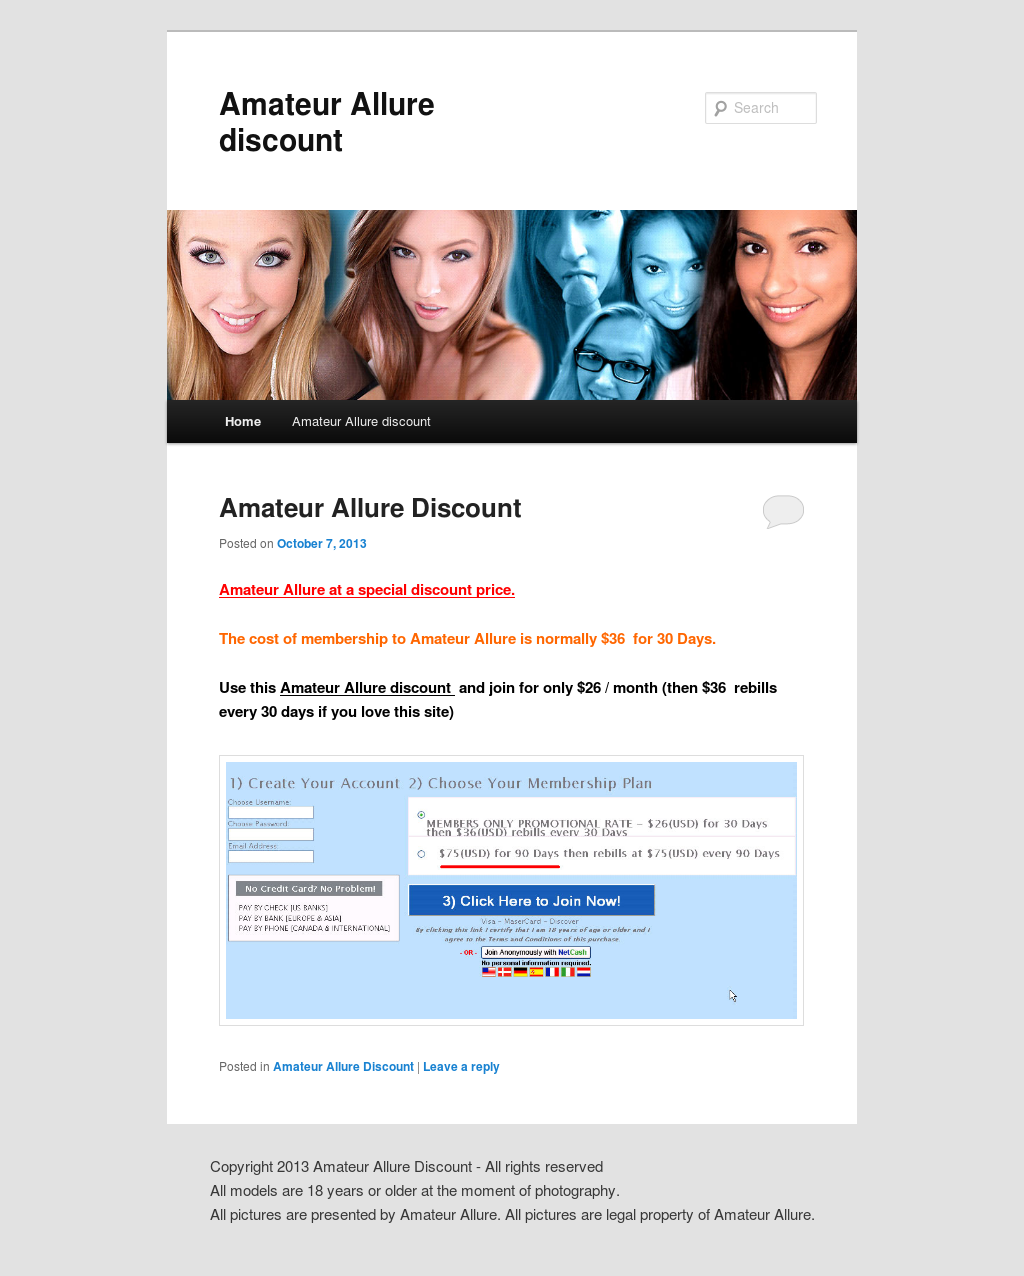 amateur allure discount competitors, revenue and employees - owler